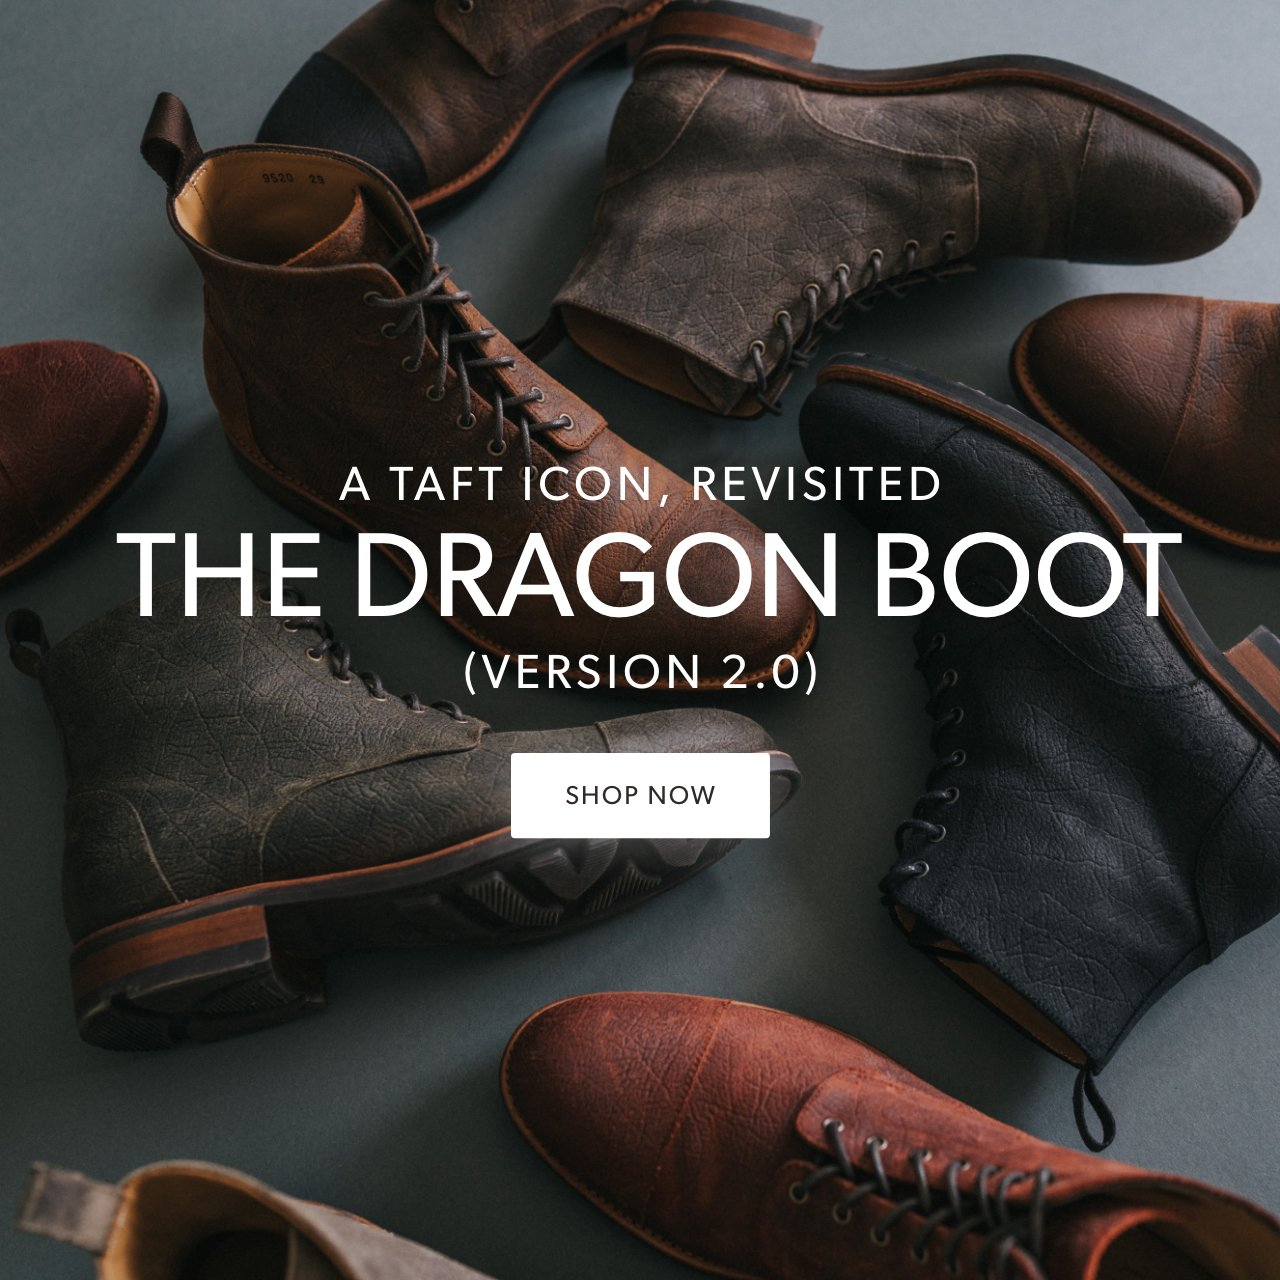 836c82b3c14 Taft Clothing Inc.: The new Dragon boots are here 🐉 | Milled